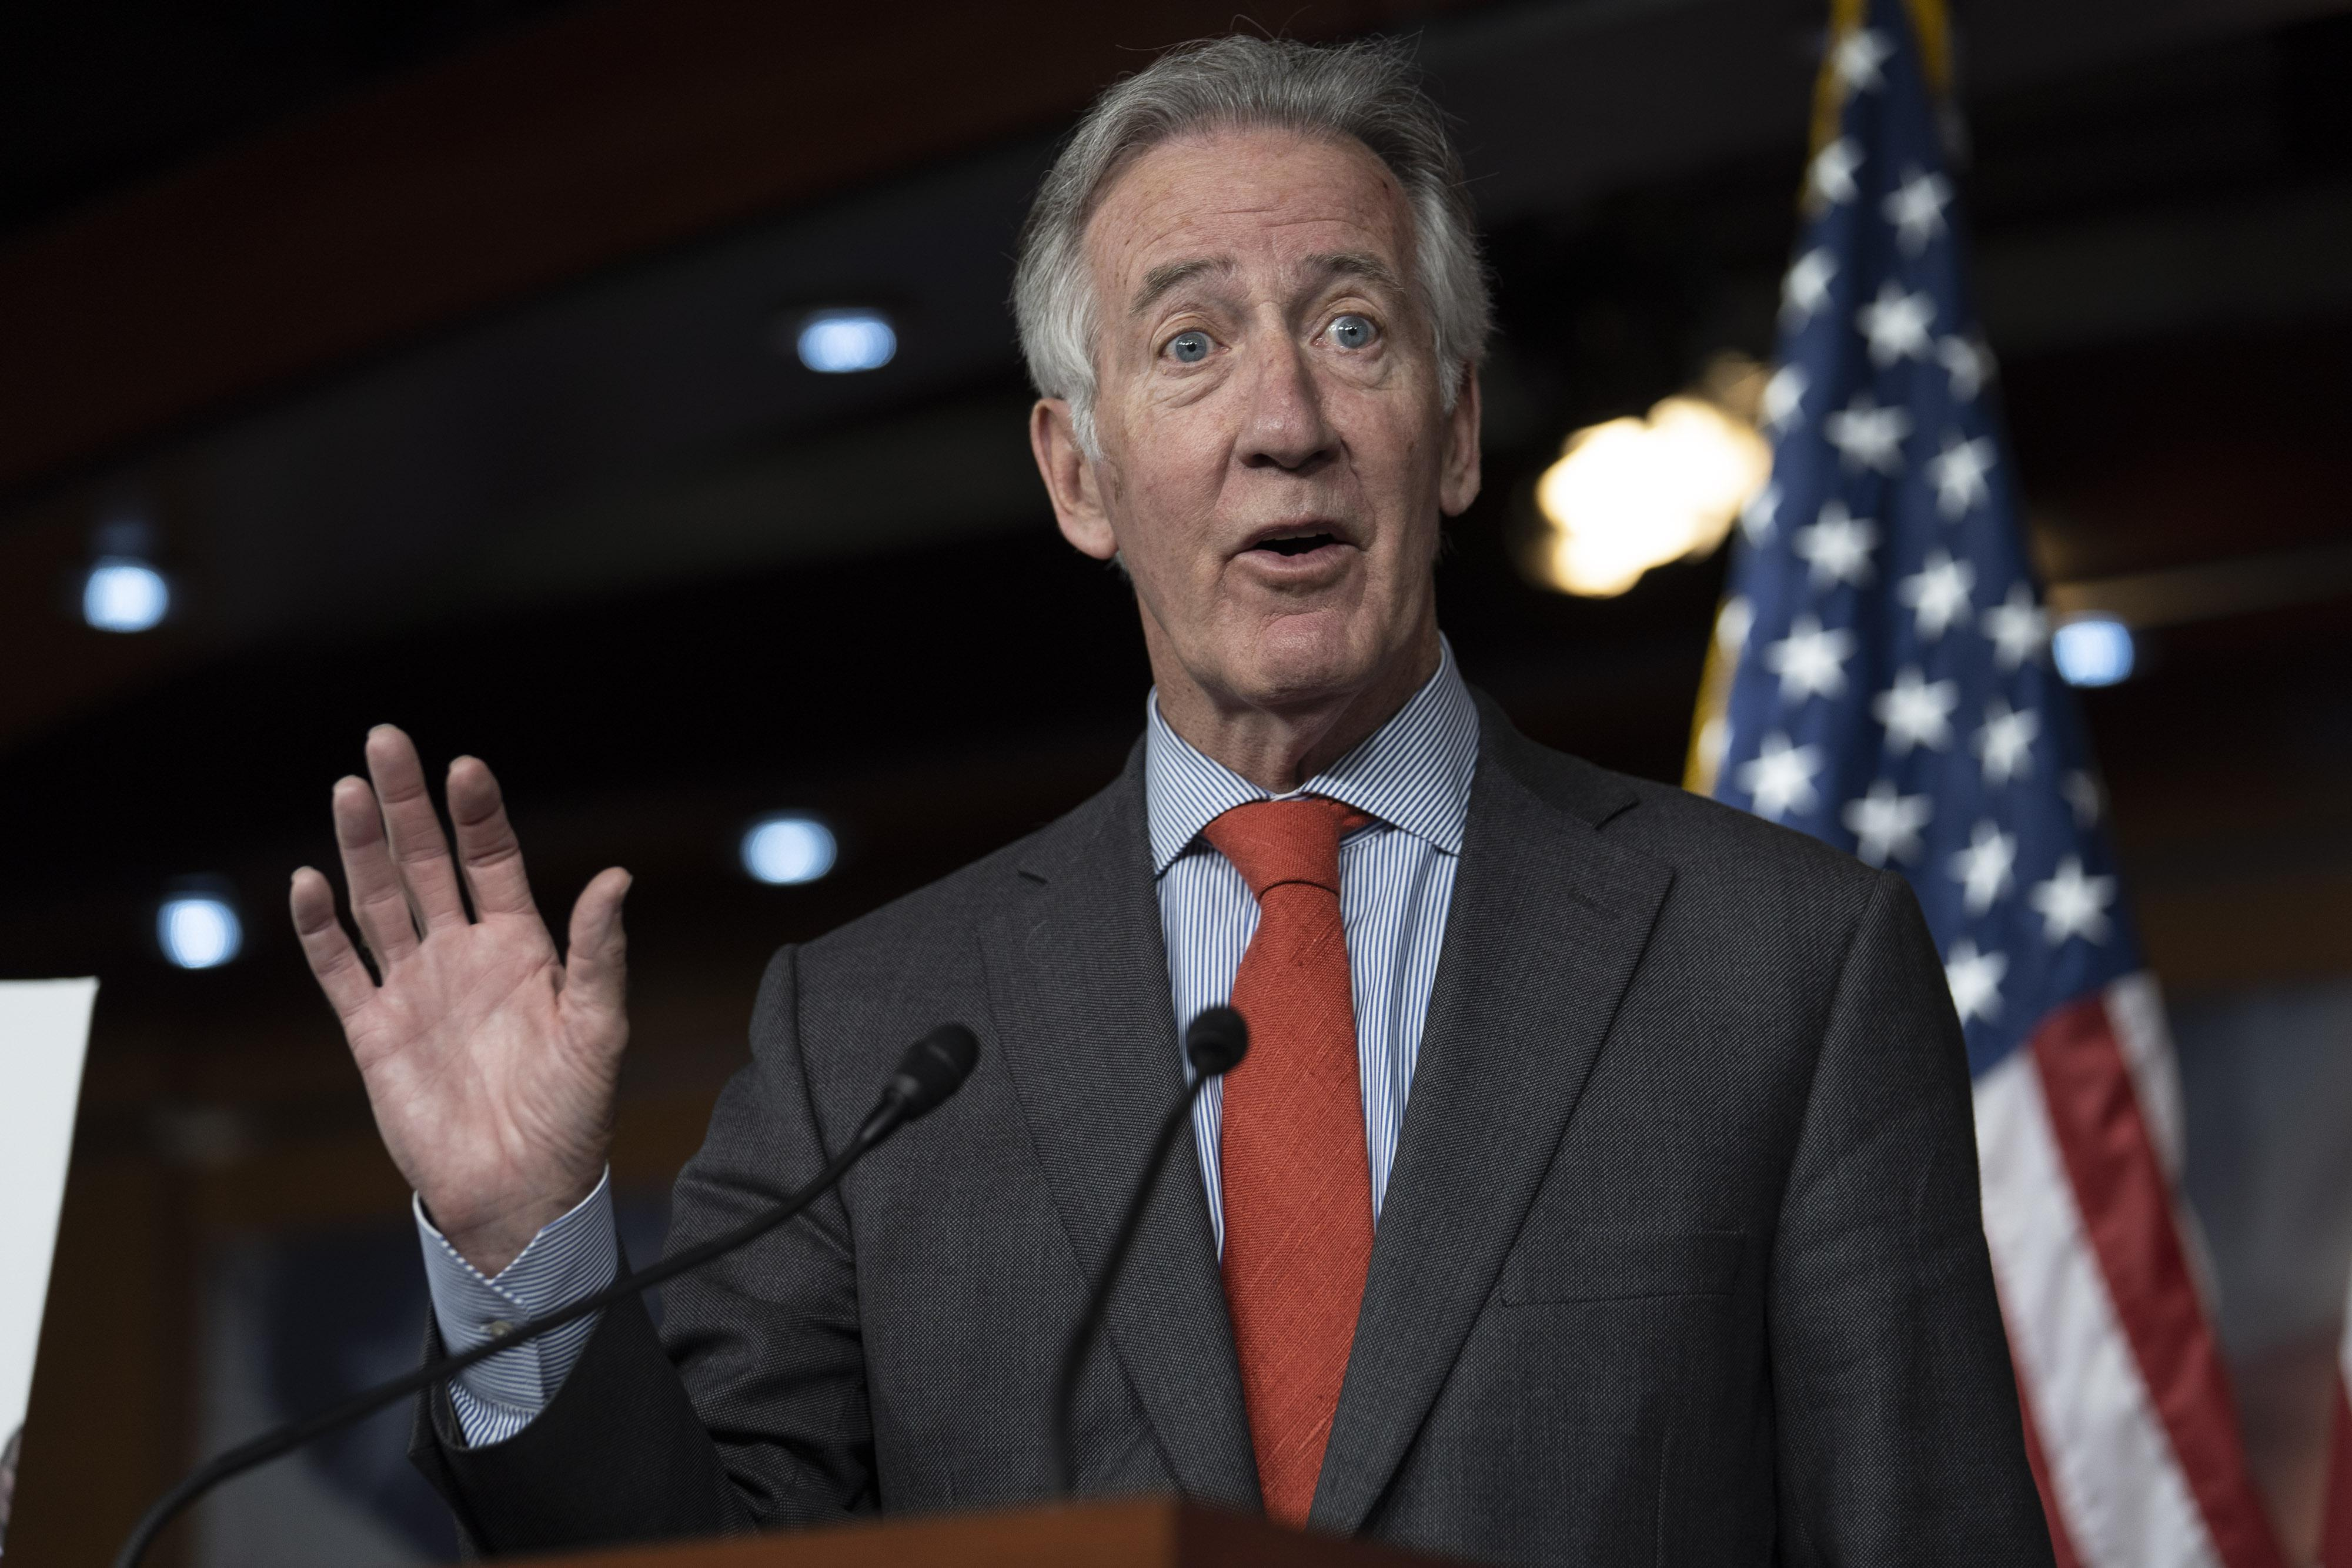 Rep. Richard Neal (D-MA) speaks during a news conference on June 13, 2018 in Washington, D.C.